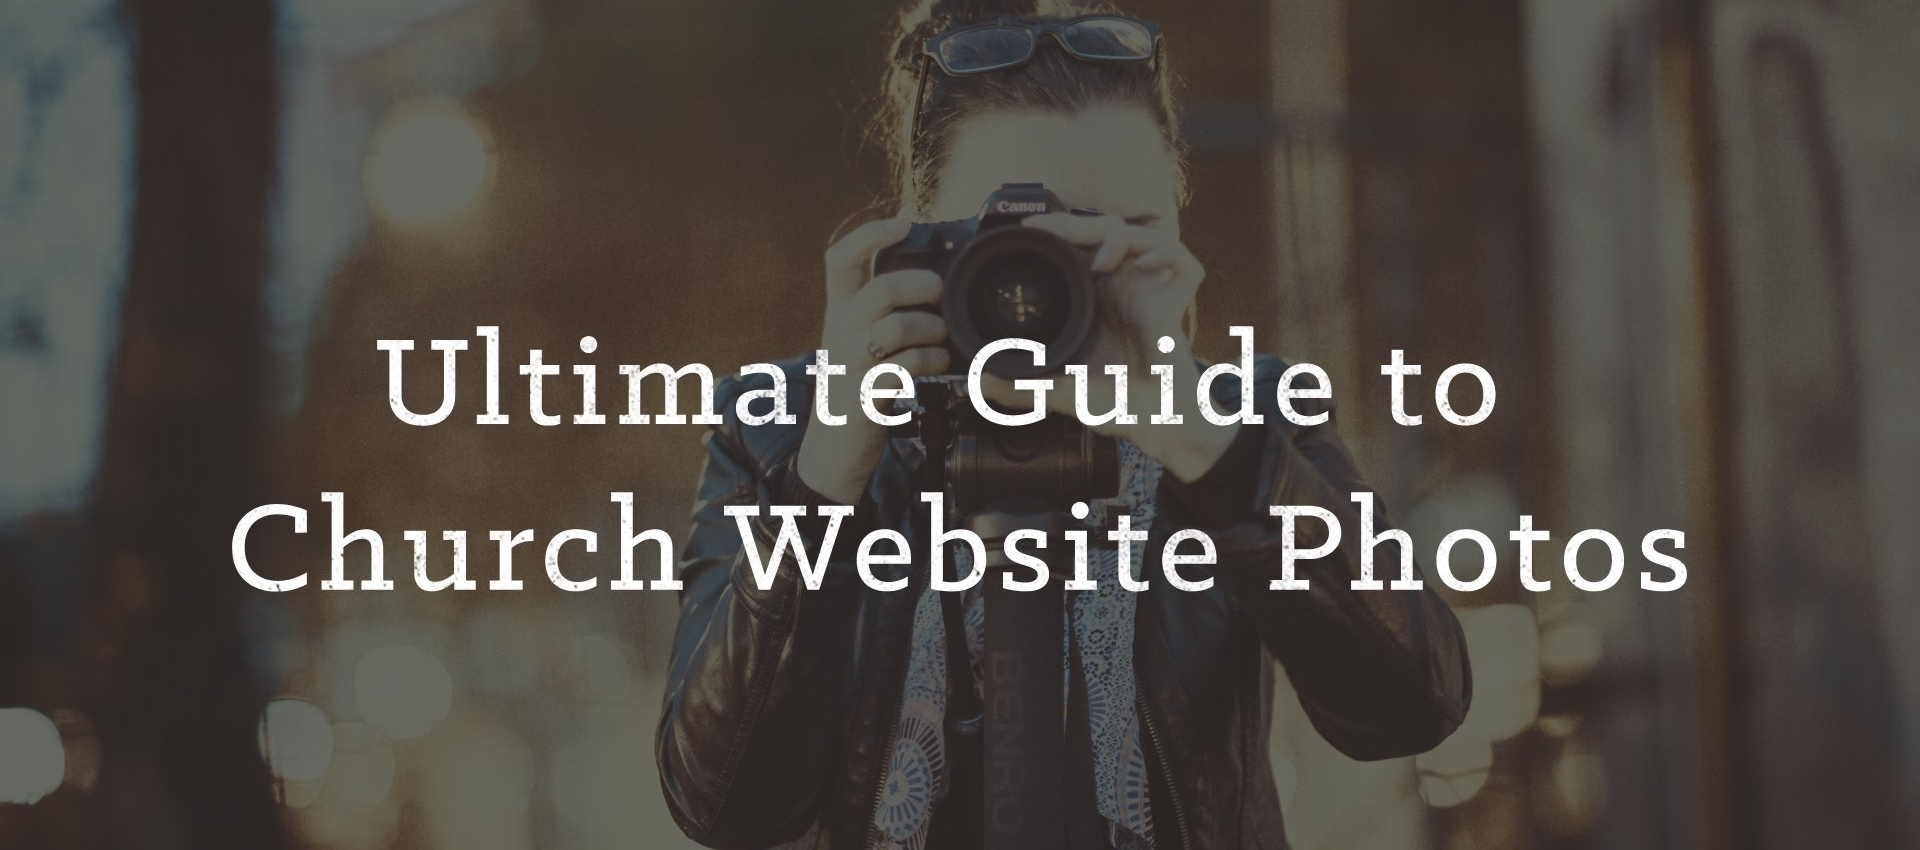 slide-ultimate guide to church web photos